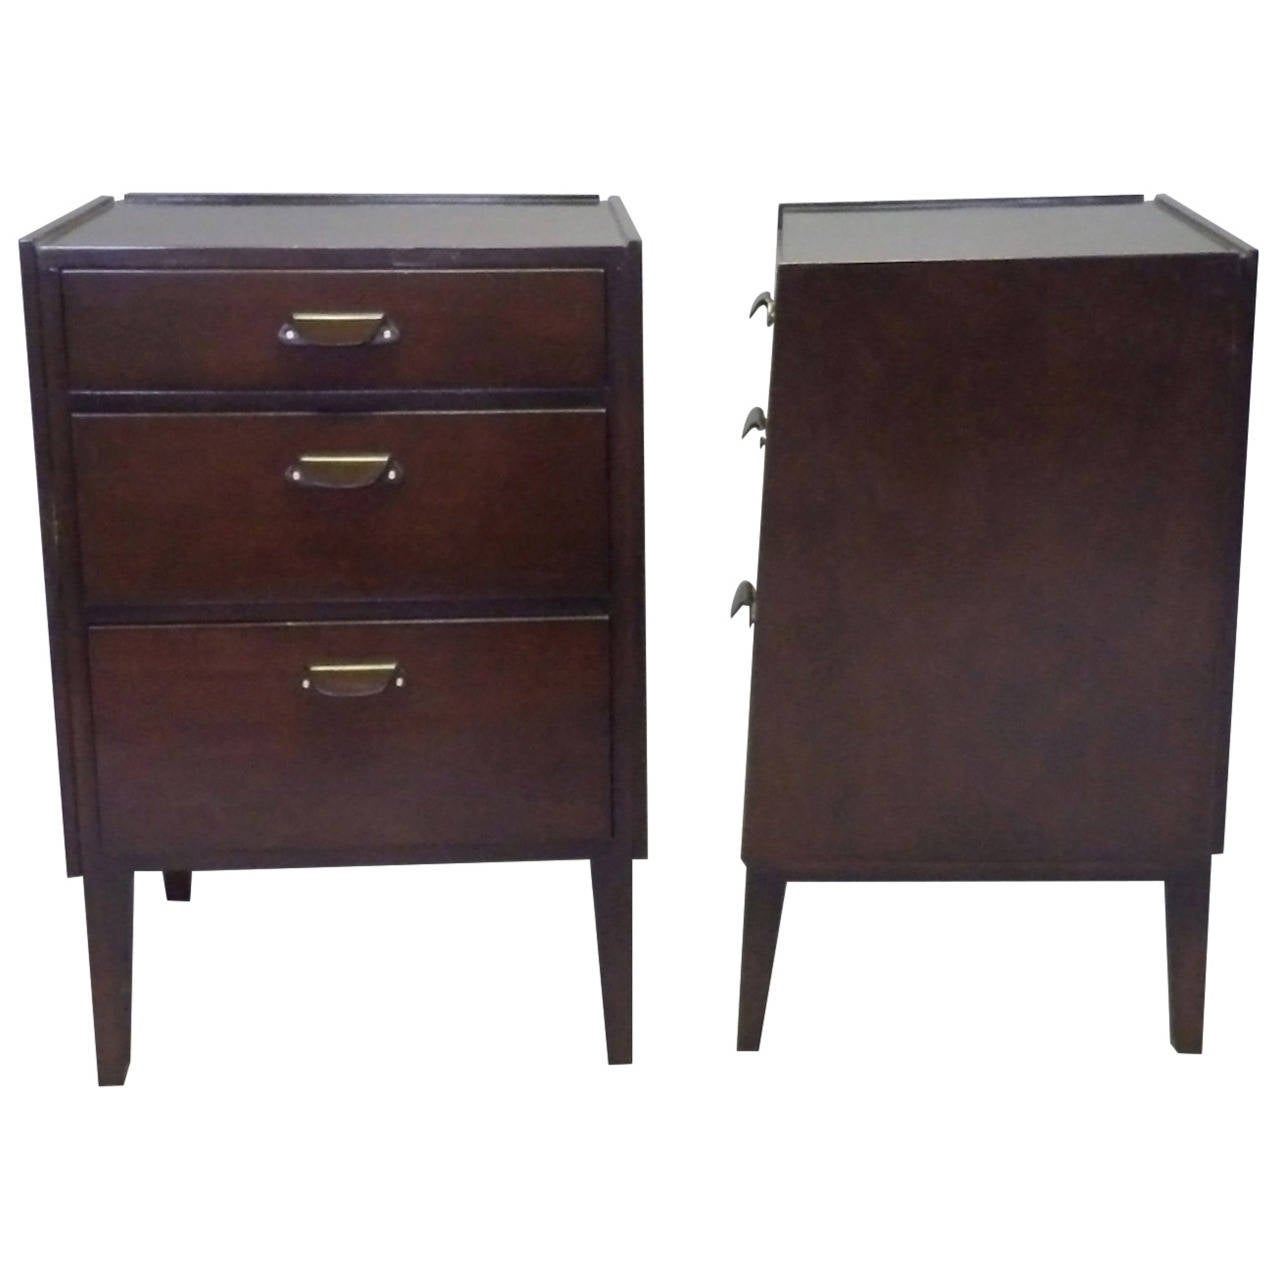 Pair of Edward Wormley for Dunbar Angle Front Nightstands